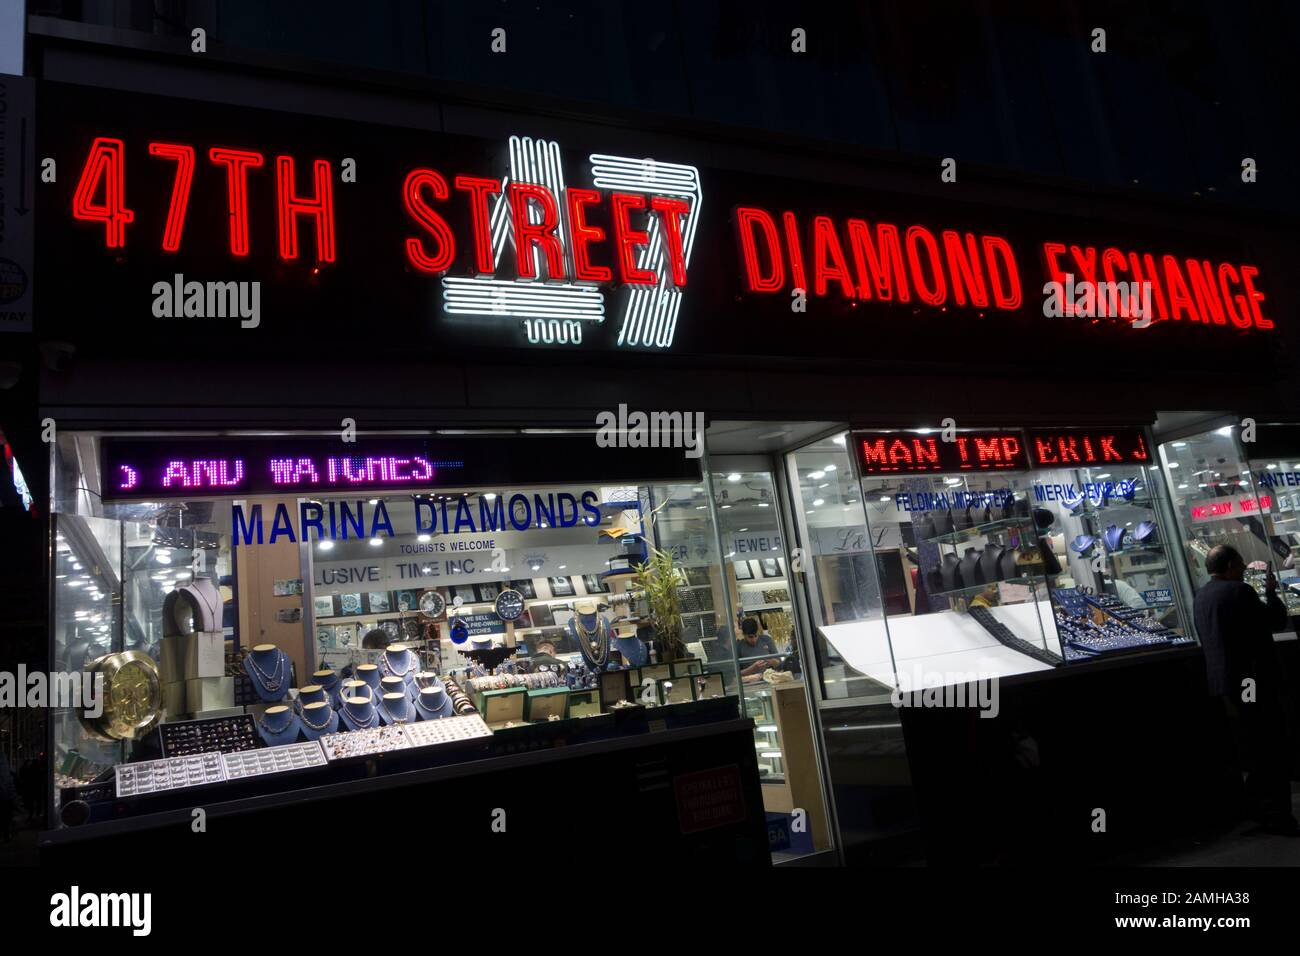 47th Street Diamond Exchange at the corner of 47th Street and Sixth Avenue in the diamond district on E. 47th Street, Midtown Manhattan, New York City Stock Photo